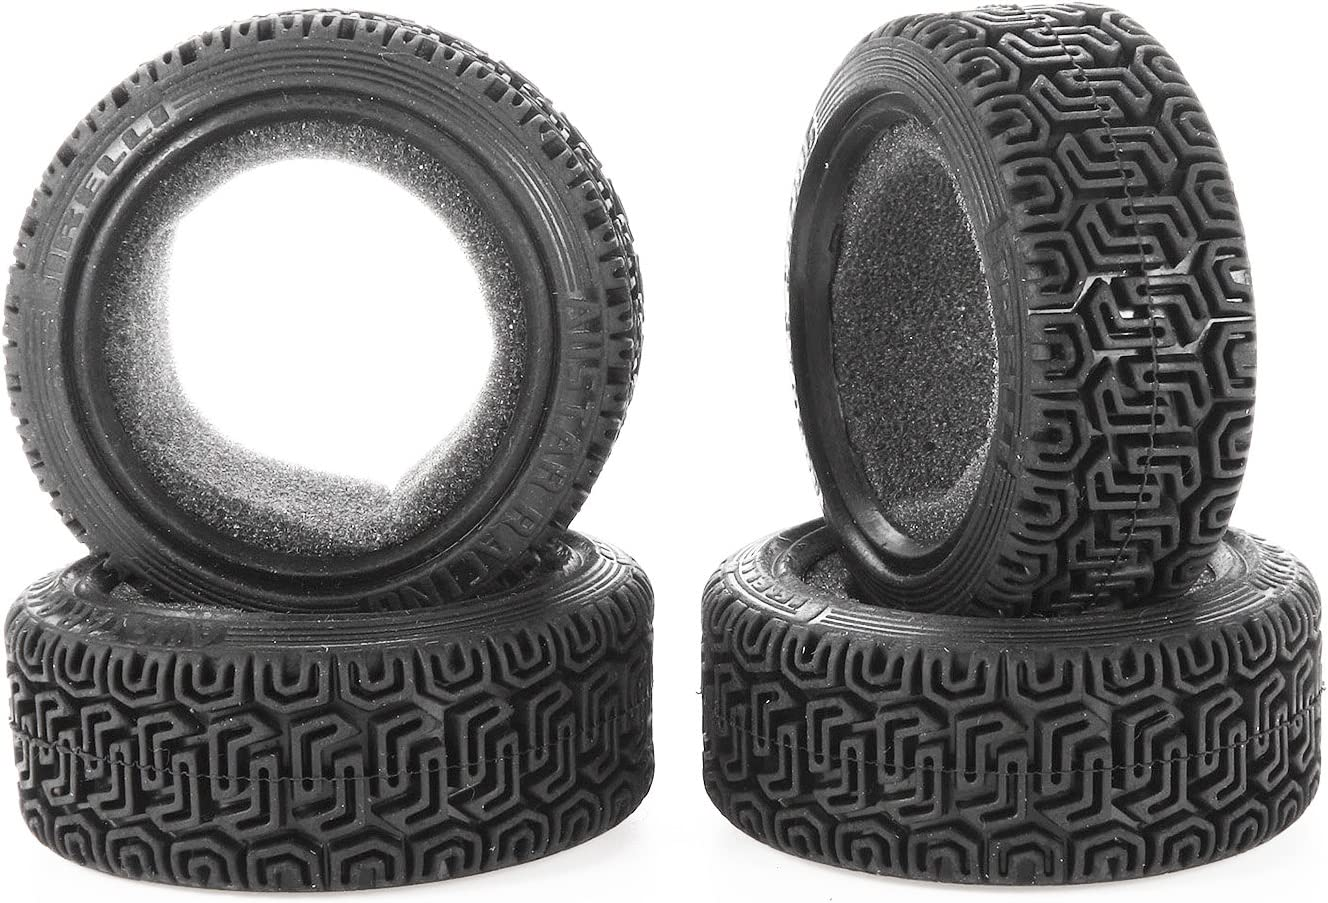 REhobby 4pcs 1//10 RC On Road Rally Wheels Tires 12mm Hex Drive Hub with Foam Inserts for 1:10 Traxxas TRX4 Touring Car Black